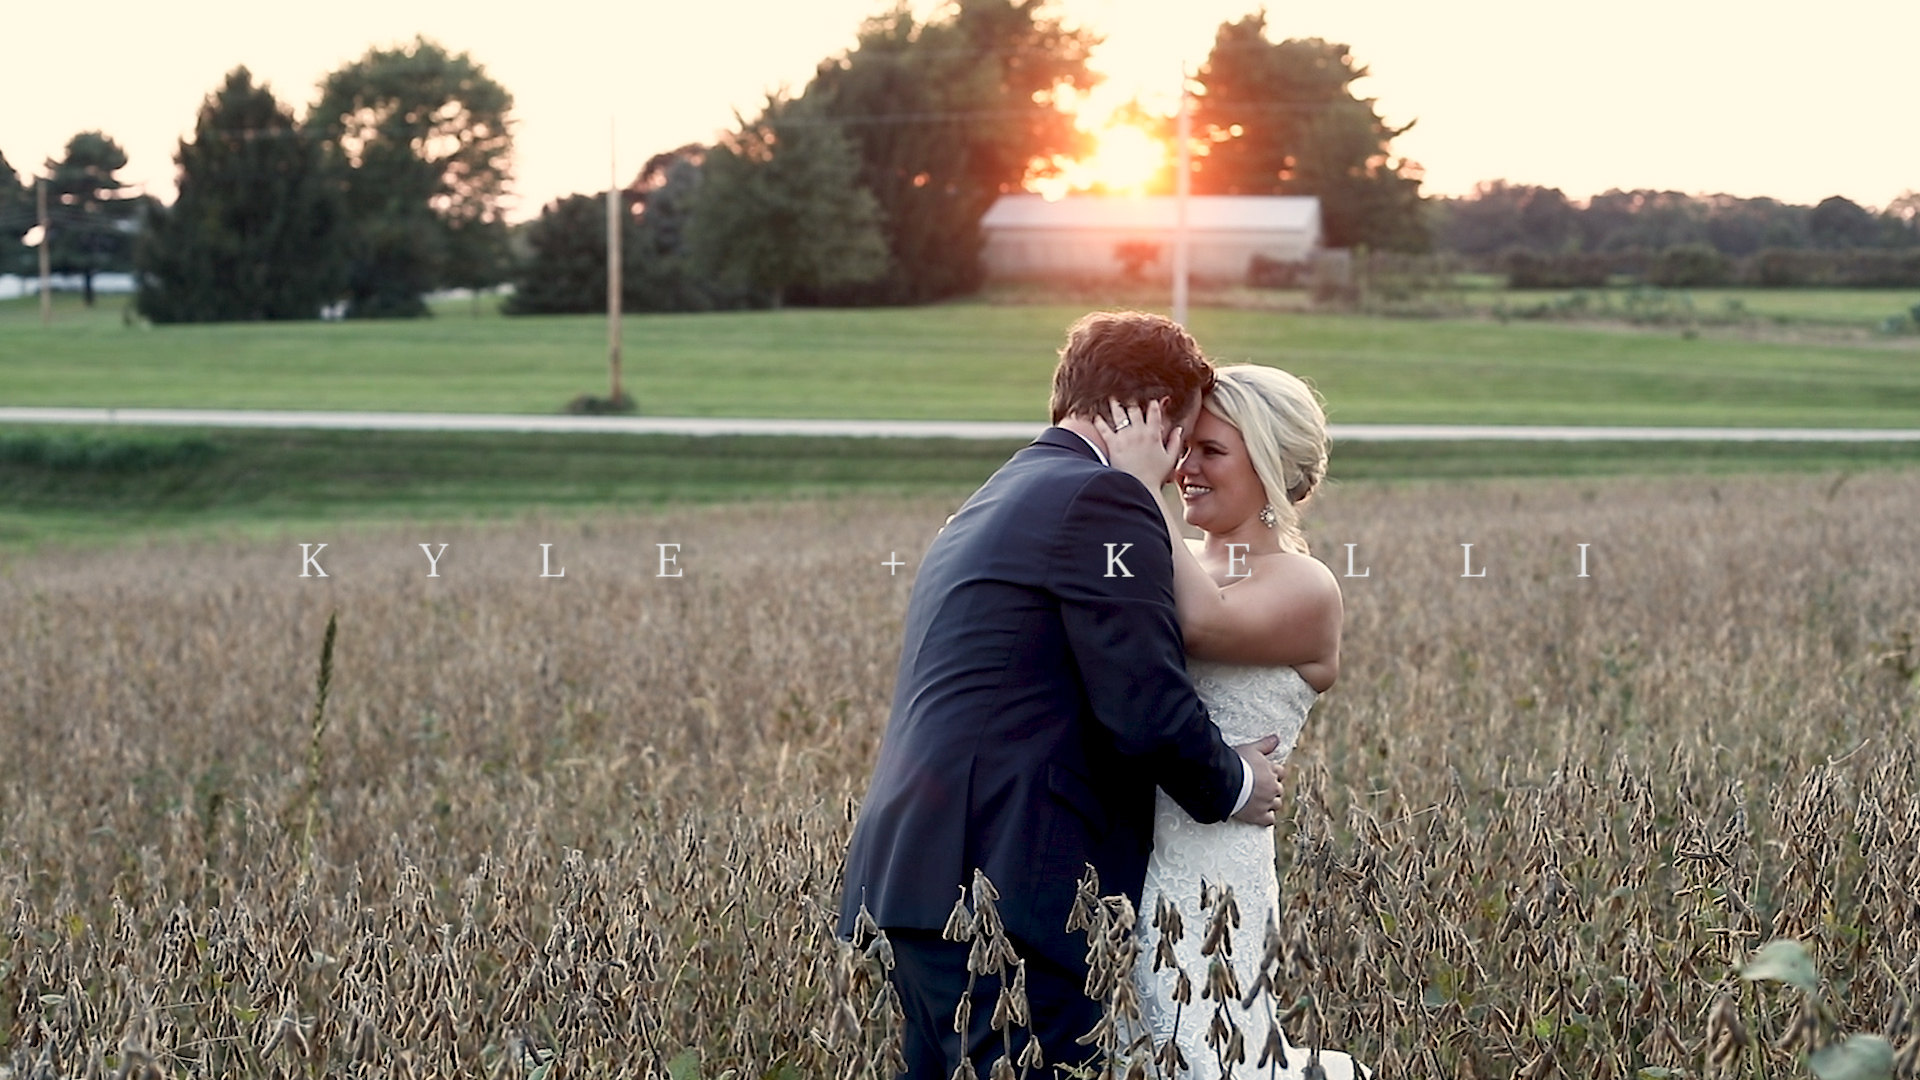 Kyle + Kelli | Starlight, Indiana | A Family Farm